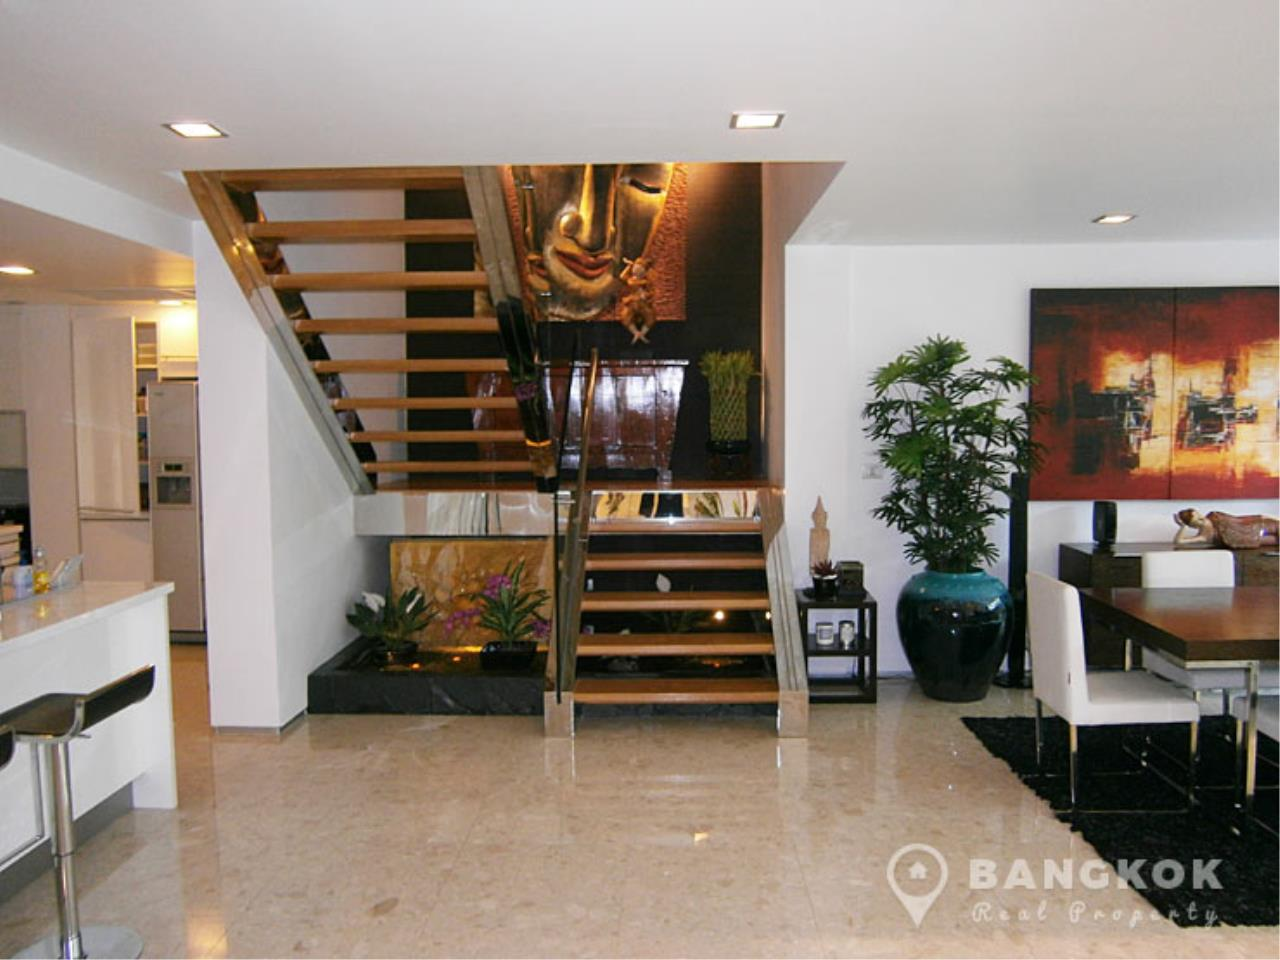 Bangkok Real Property Agency's Ficus Lane | A Fabulous Spacious 3 Bed 4 Bath Duplex near BTS 38